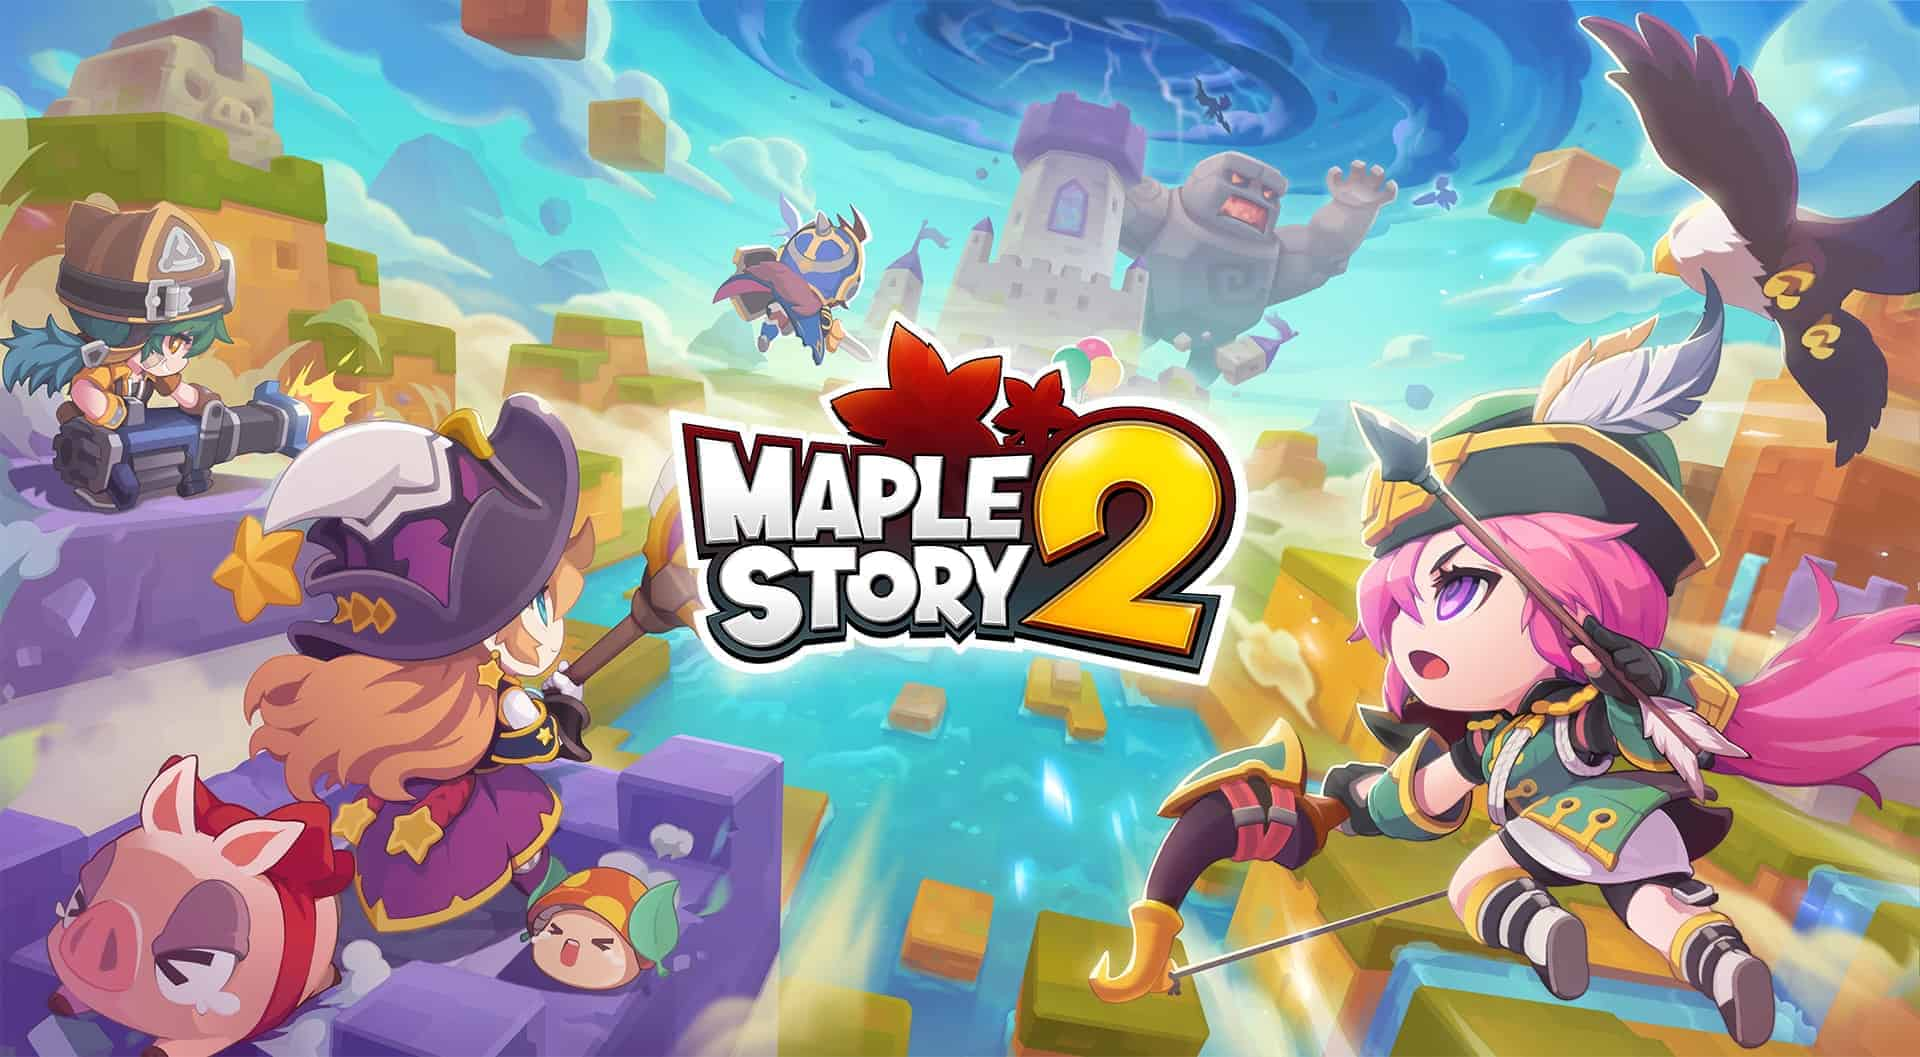 Maplestory 2 Gear In Depth Guide, Tips And Tricks MS2